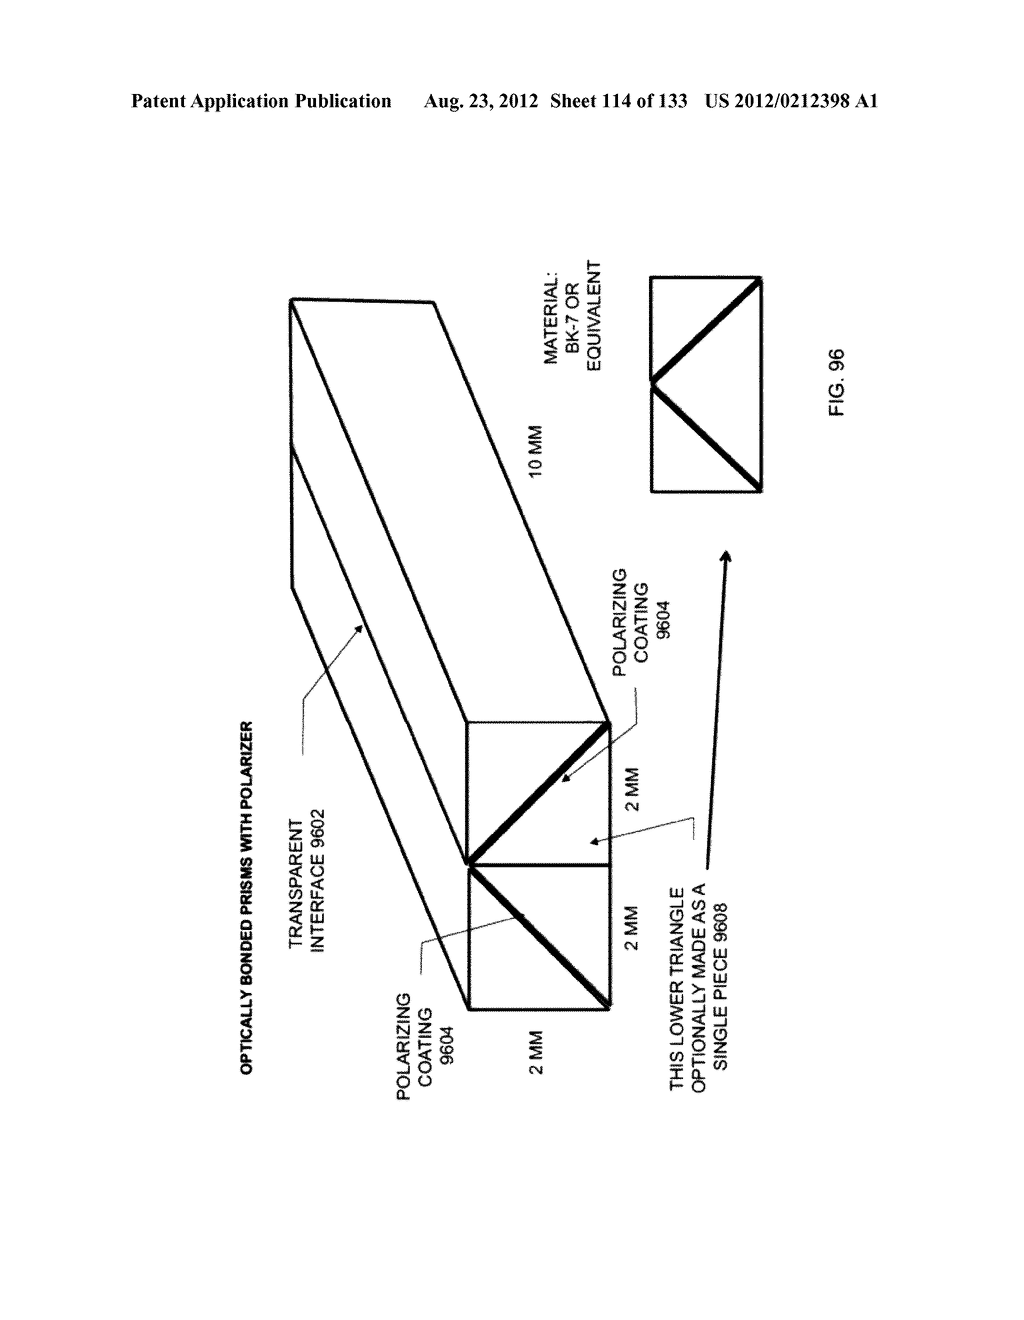 SEE-THROUGH NEAR-EYE DISPLAY GLASSES INCLUDING A PARTIALLY REFLECTIVE,     PARTIALLY TRANSMITTING OPTICAL ELEMENT - diagram, schematic, and image 115